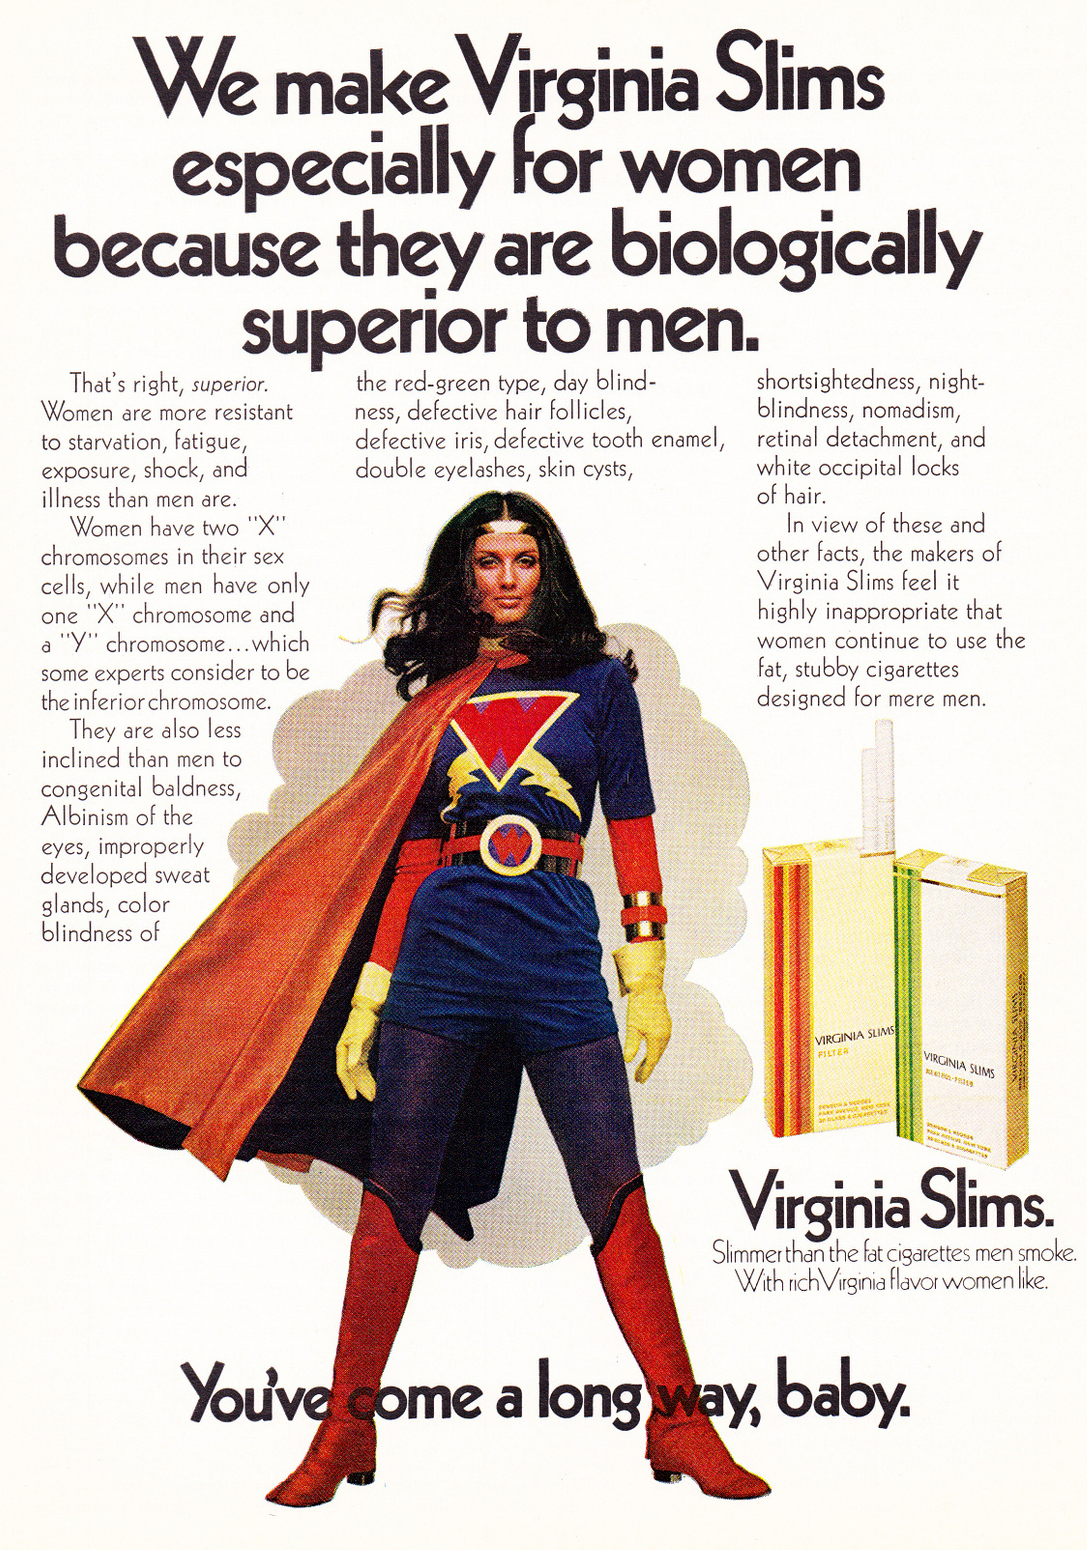 women who smoke virginia slims